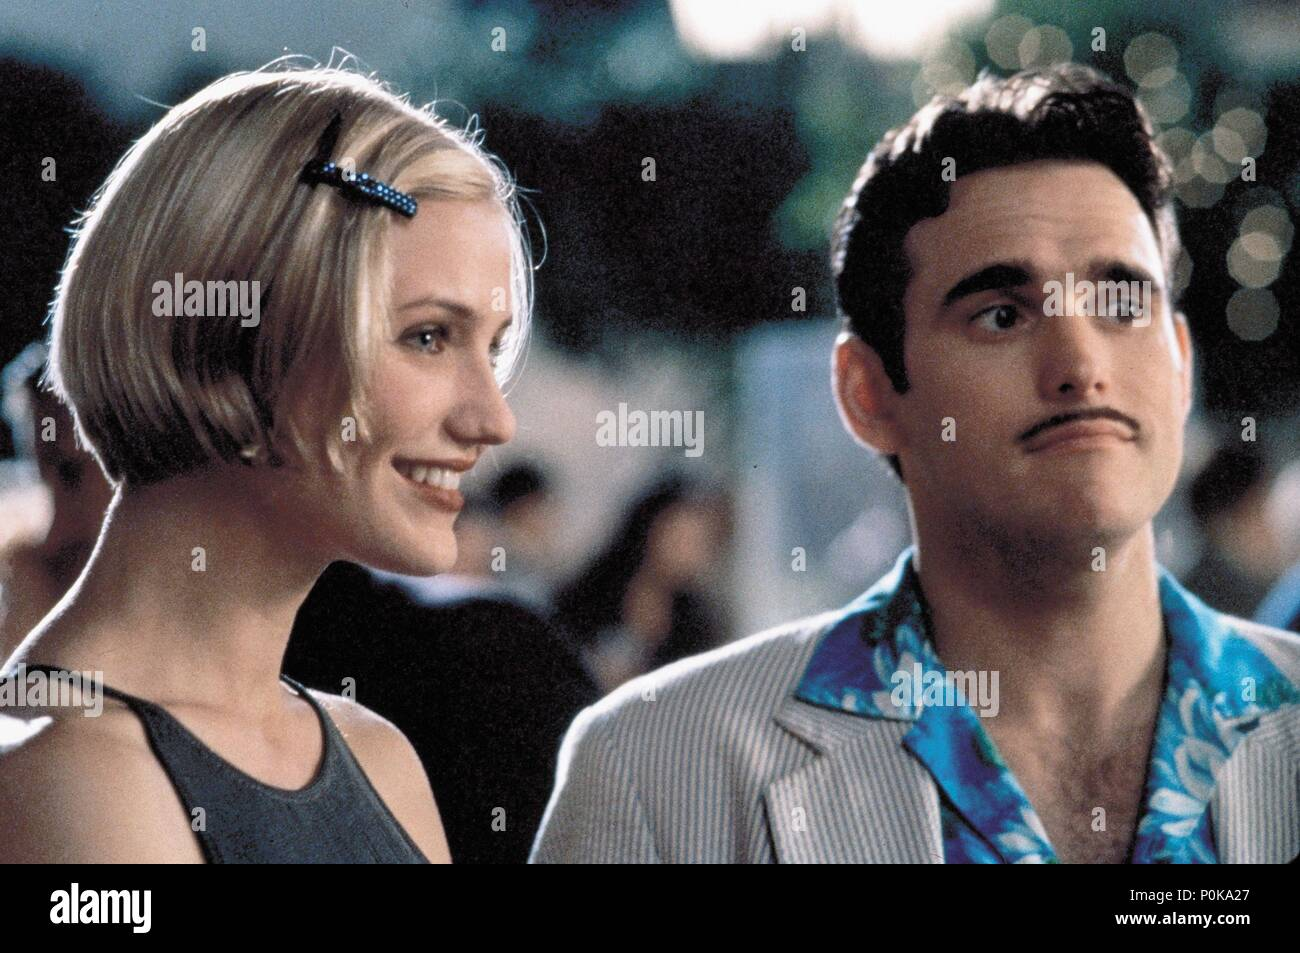 Original Film Title: THERE'S SOMETHING ABOUT MARY.  English Title: THERE'S SOMETHING ABOUT MARY.  Film Director: BOBBY & PETER FARRELLY; BOBBY FARRELLY; PETER FARRELLY.  Year: 1998.  Stars: CAMERON DIAZ; MATT DILLON. Credit: 20TH CENTURY FOX / Album - Stock Image